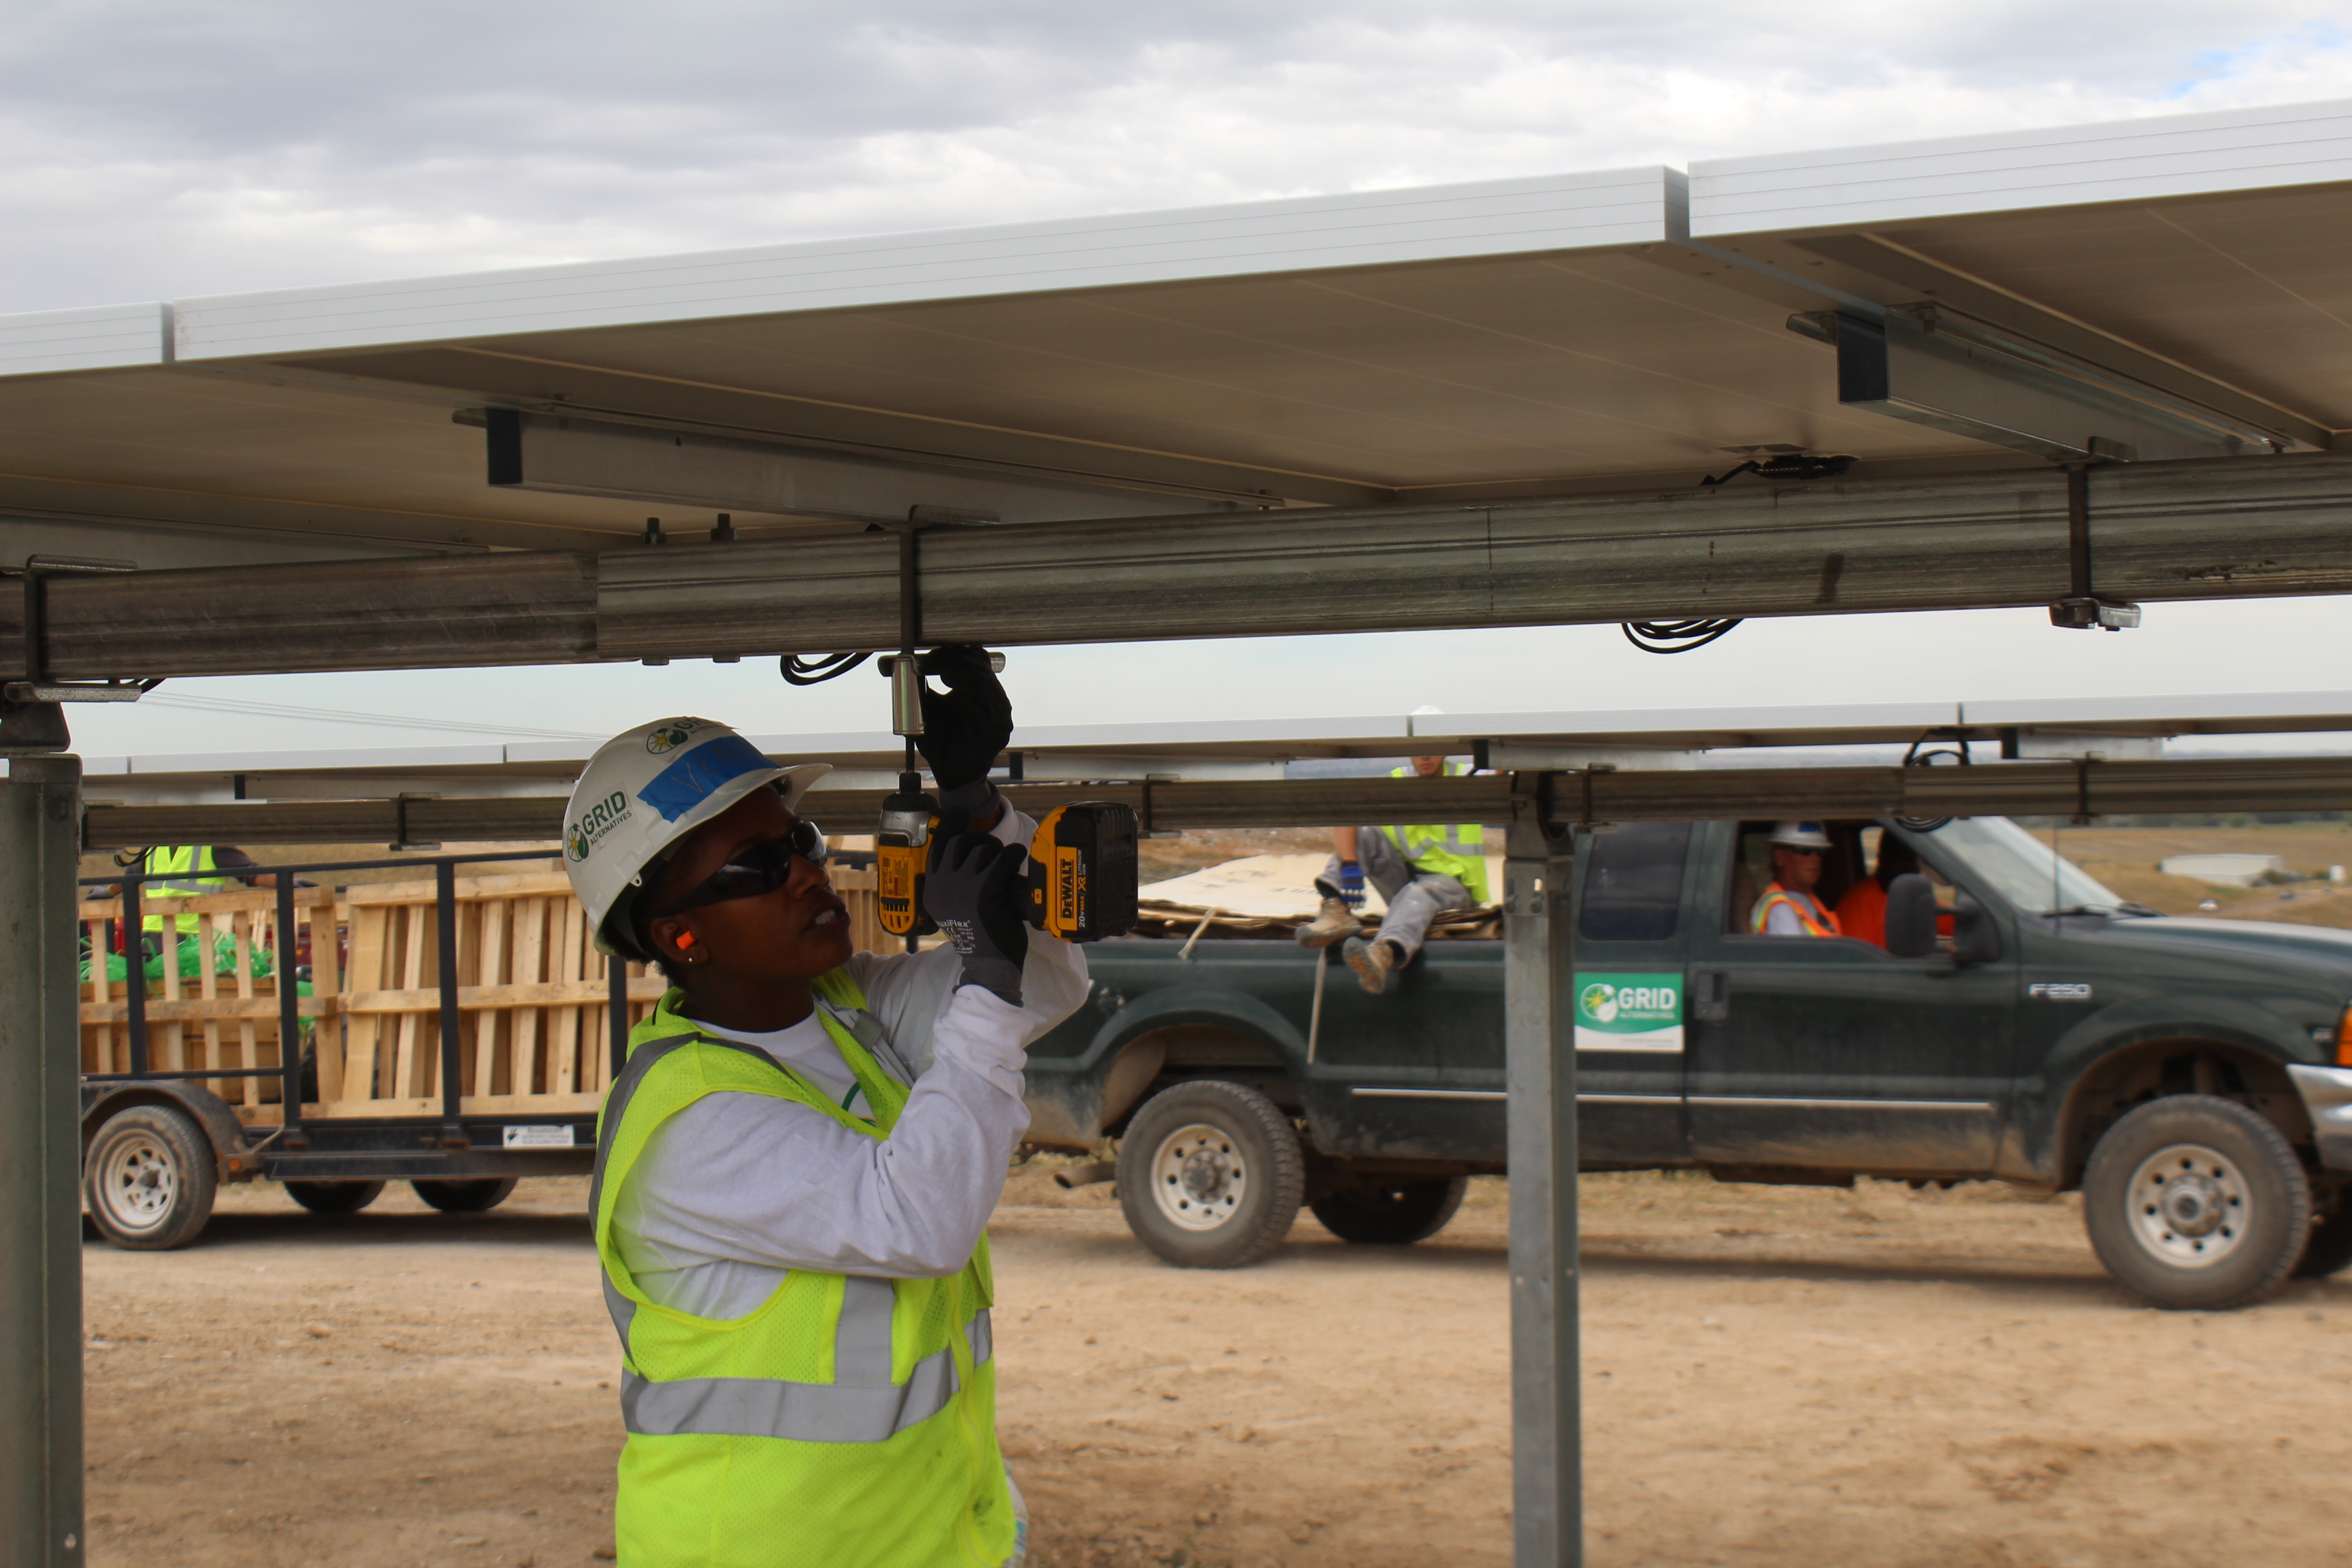 Veronica secures solar panels on GRID's 2 megawatt community solar project in Fort Collins